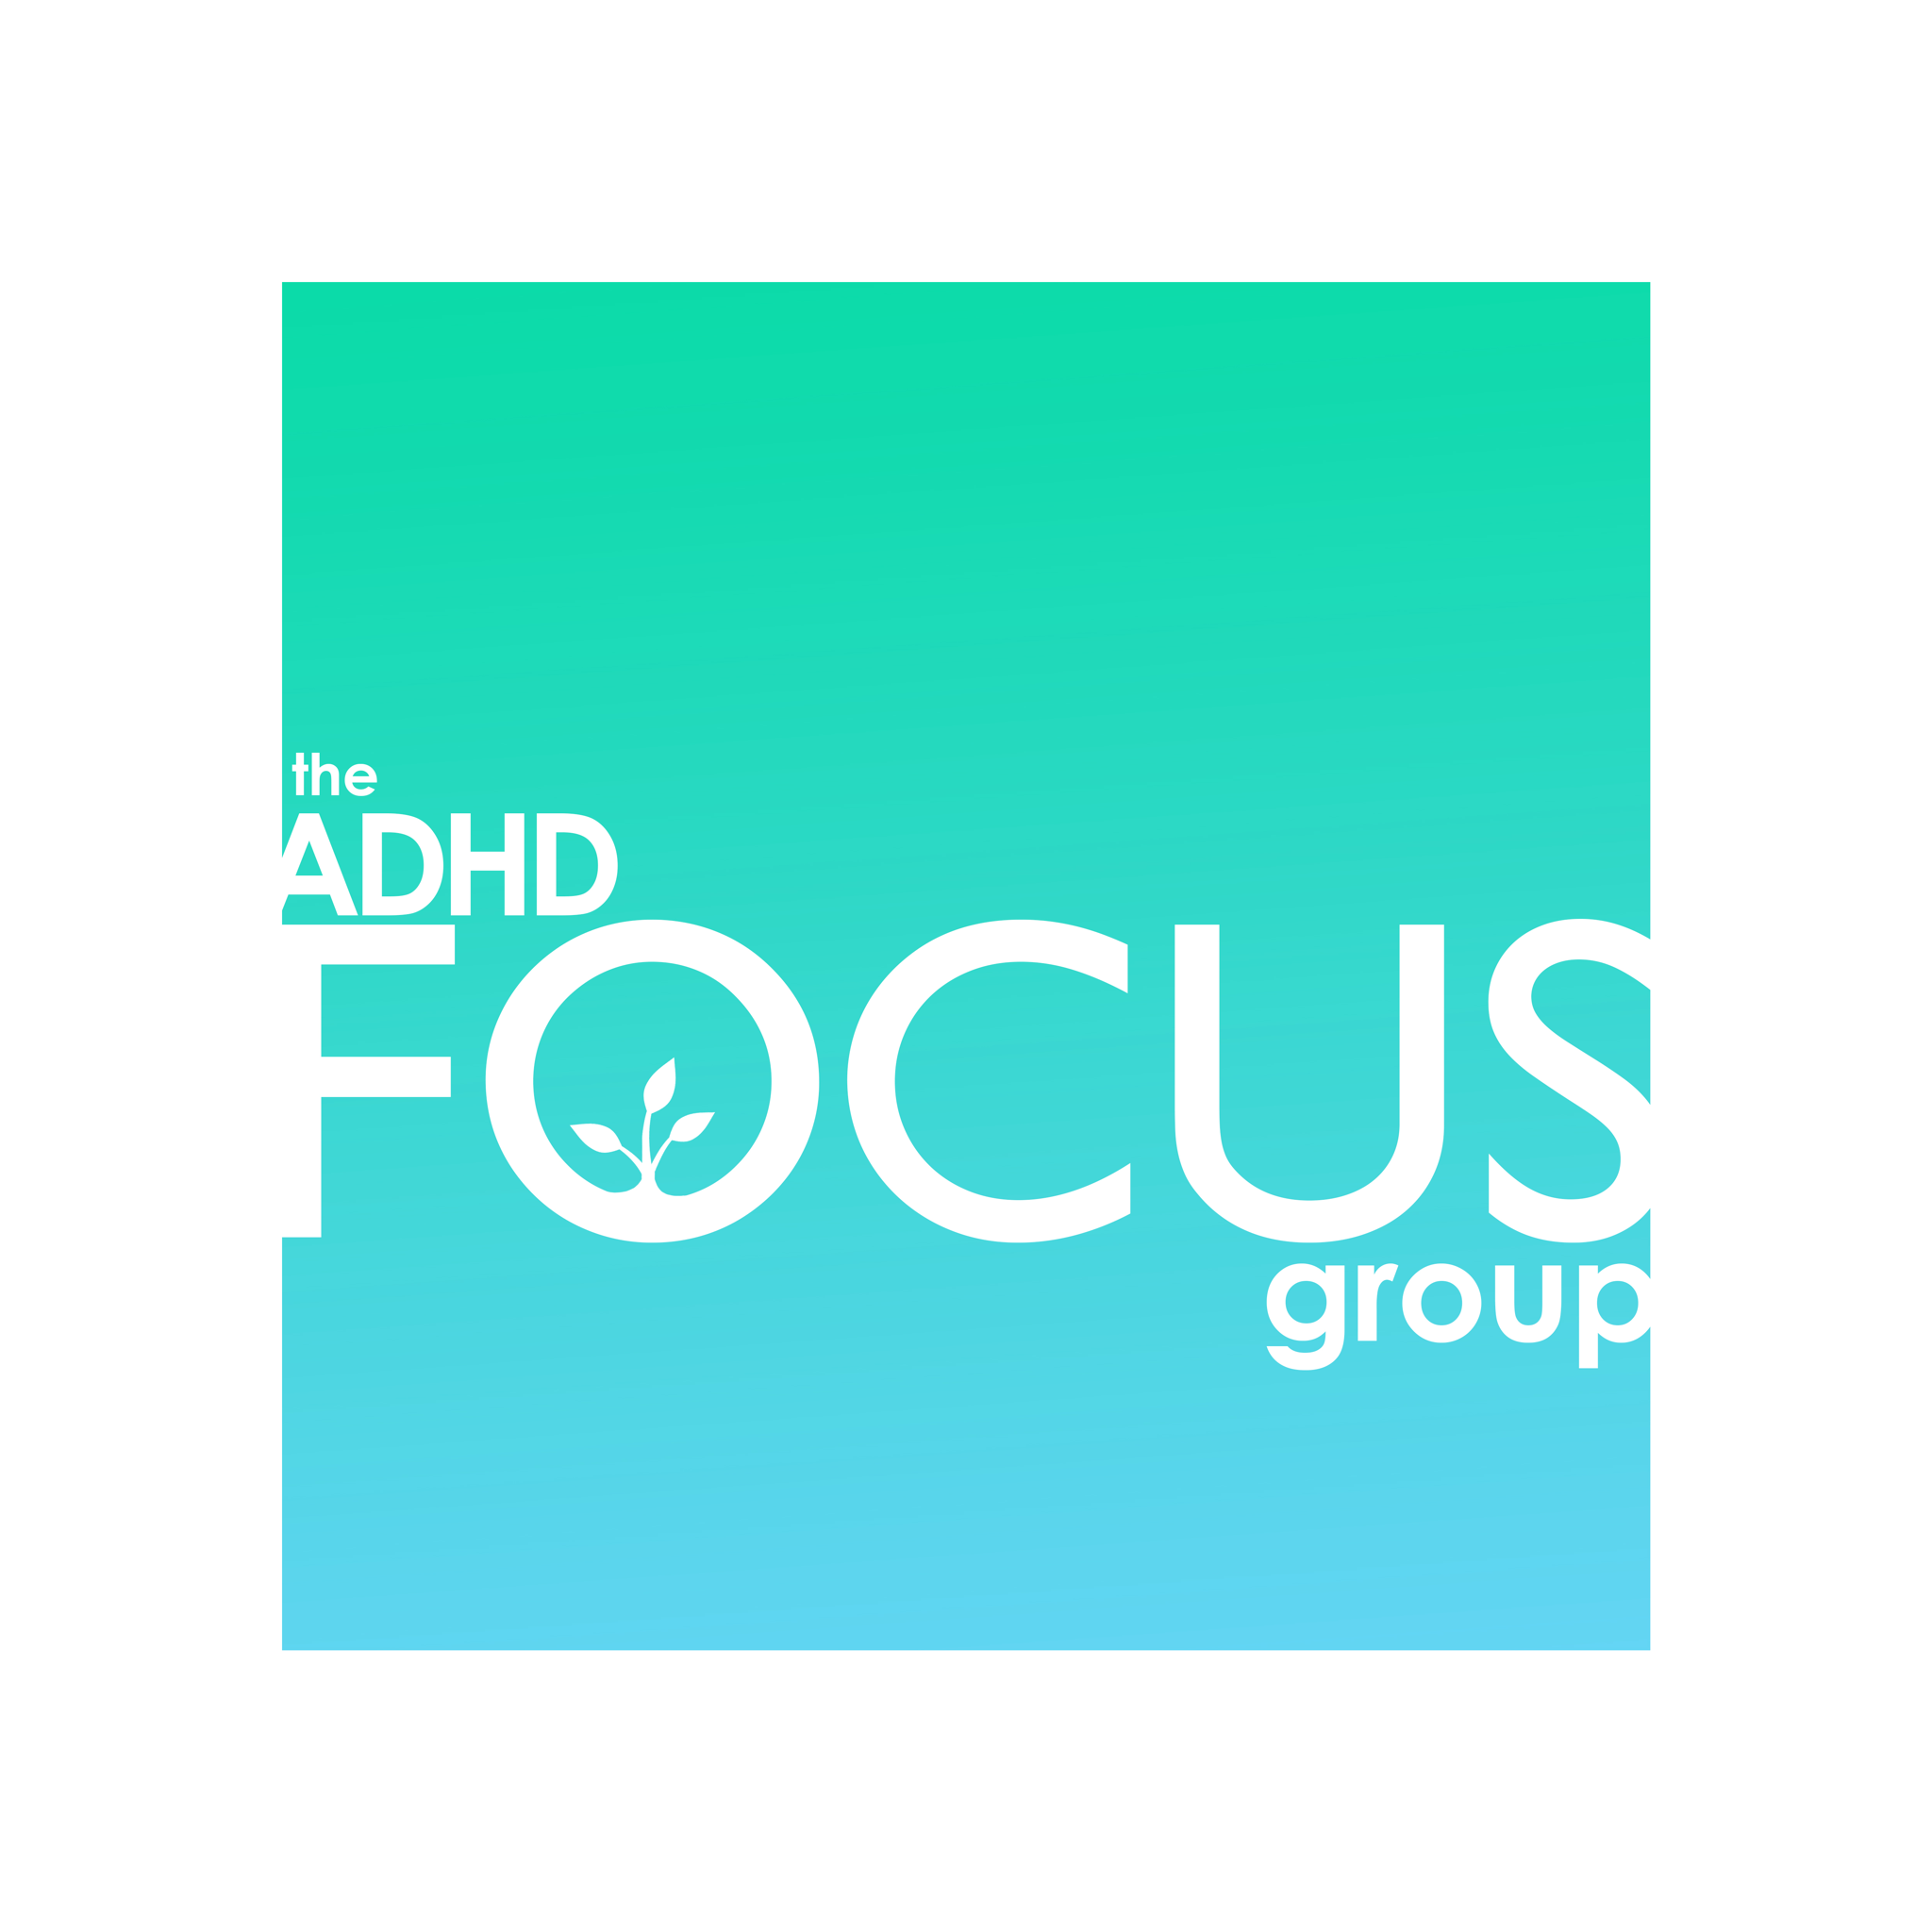 ADHD Focus Group